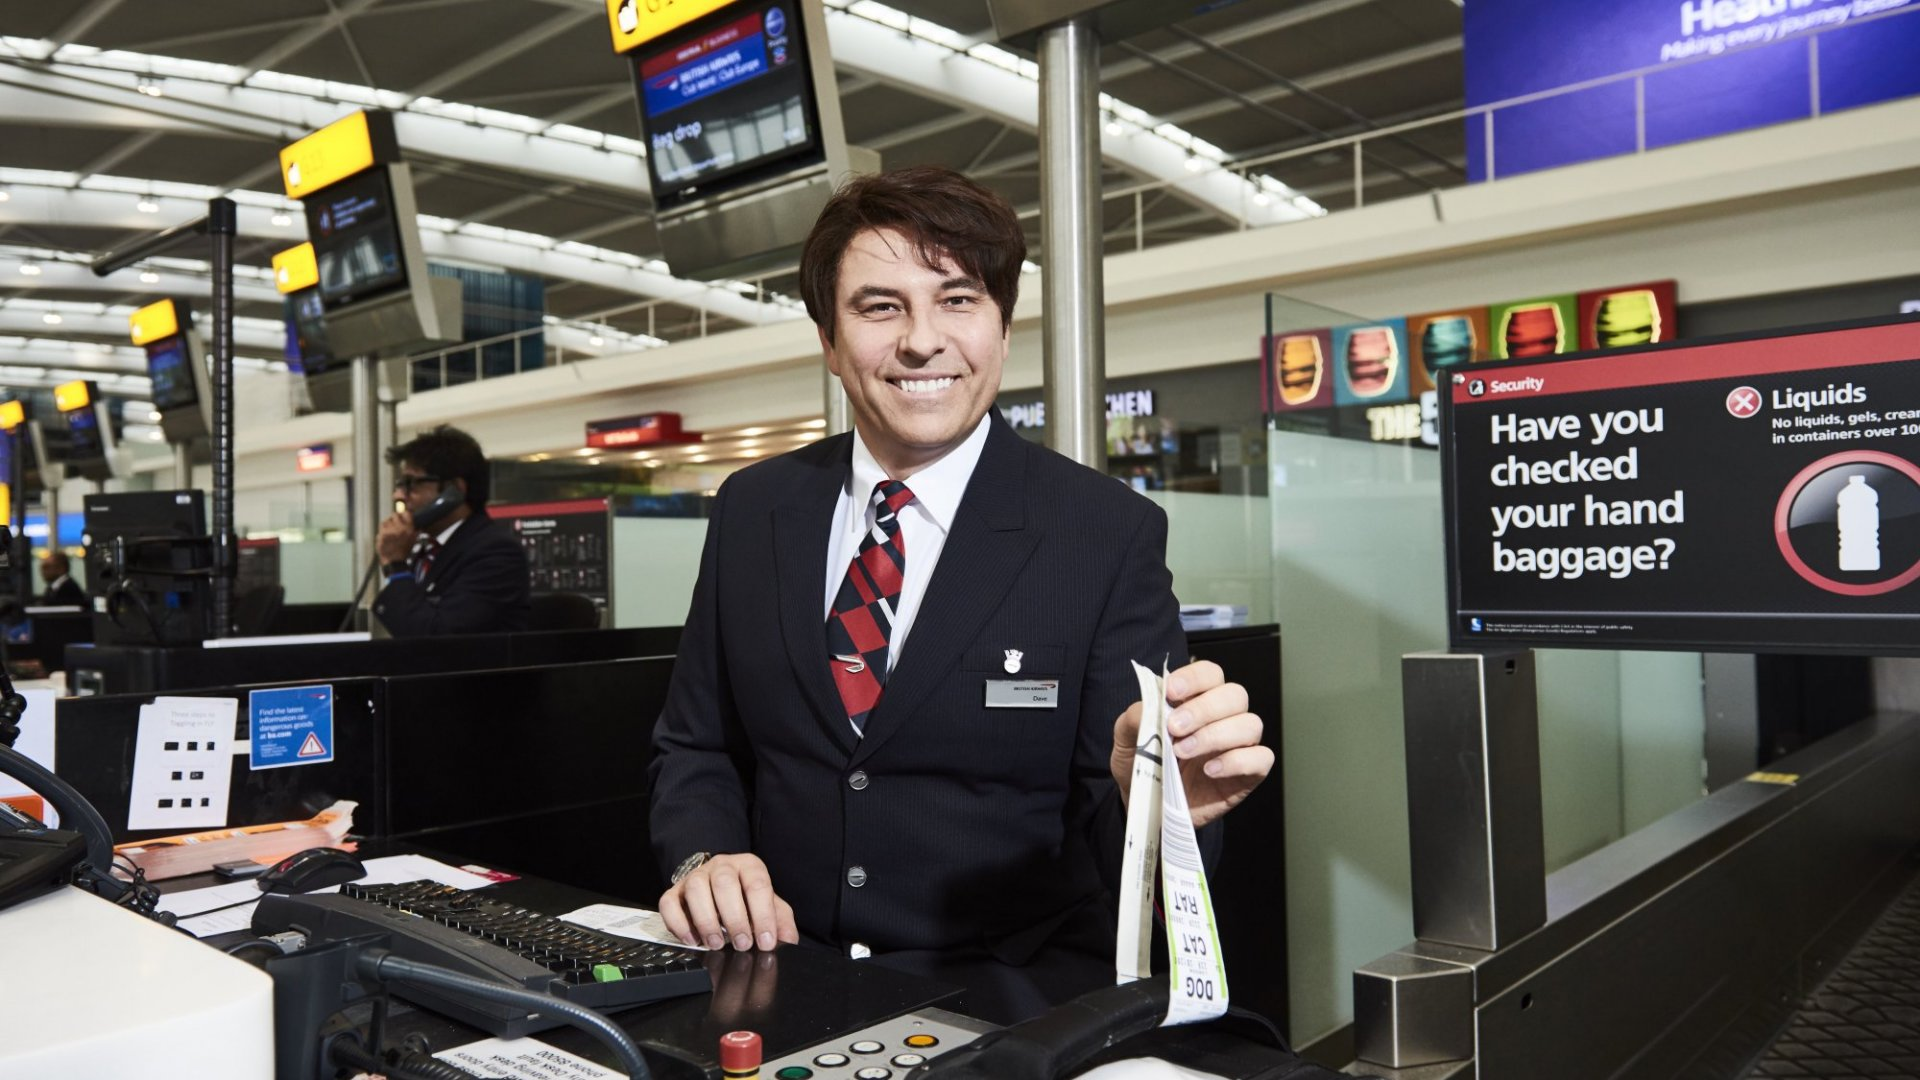 This is the comedian David Walliams, checking in British Airways passengers. I would rather him than a machine.